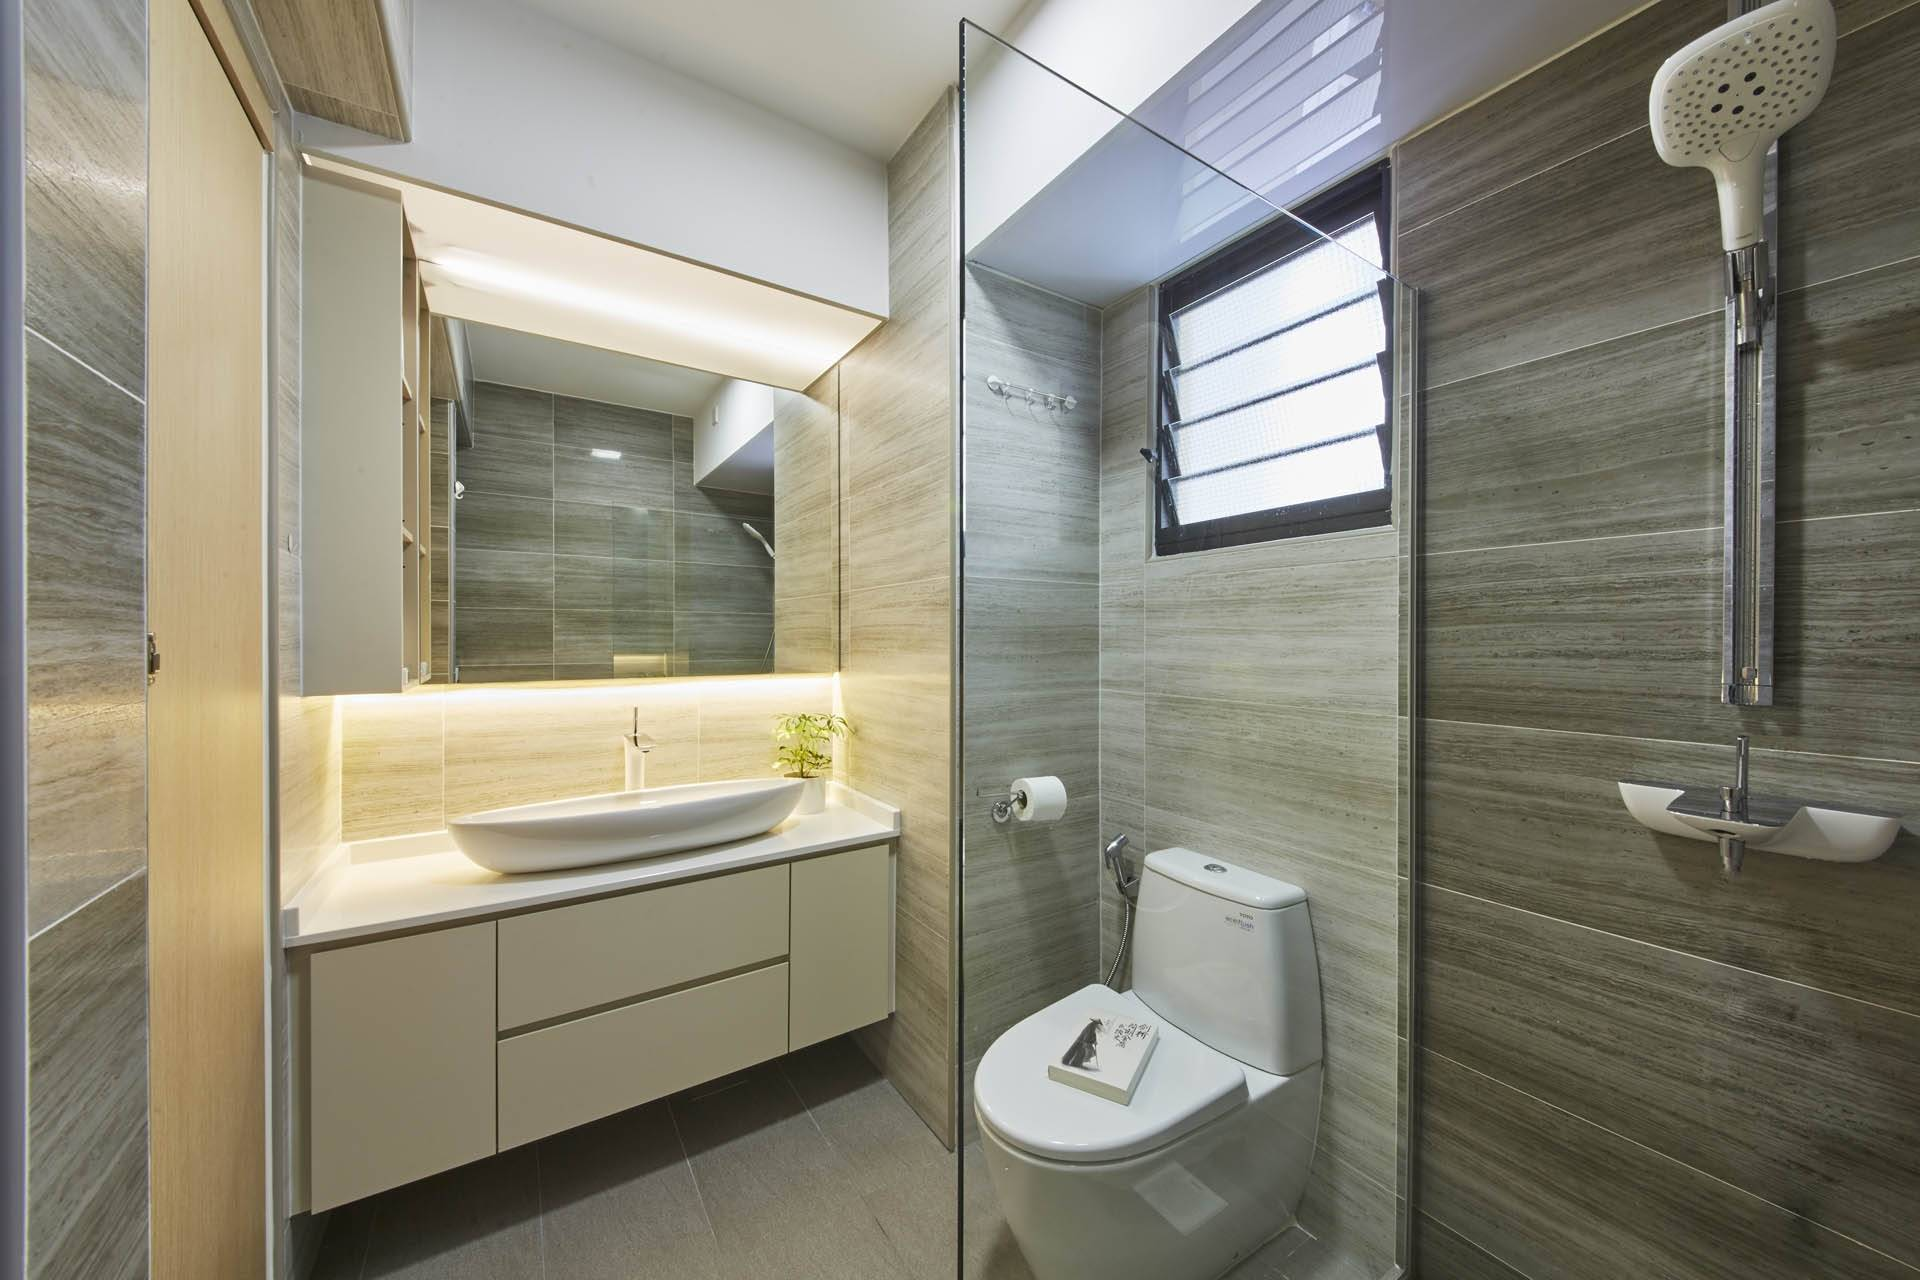 Hdb bathroom design for Small toilet design